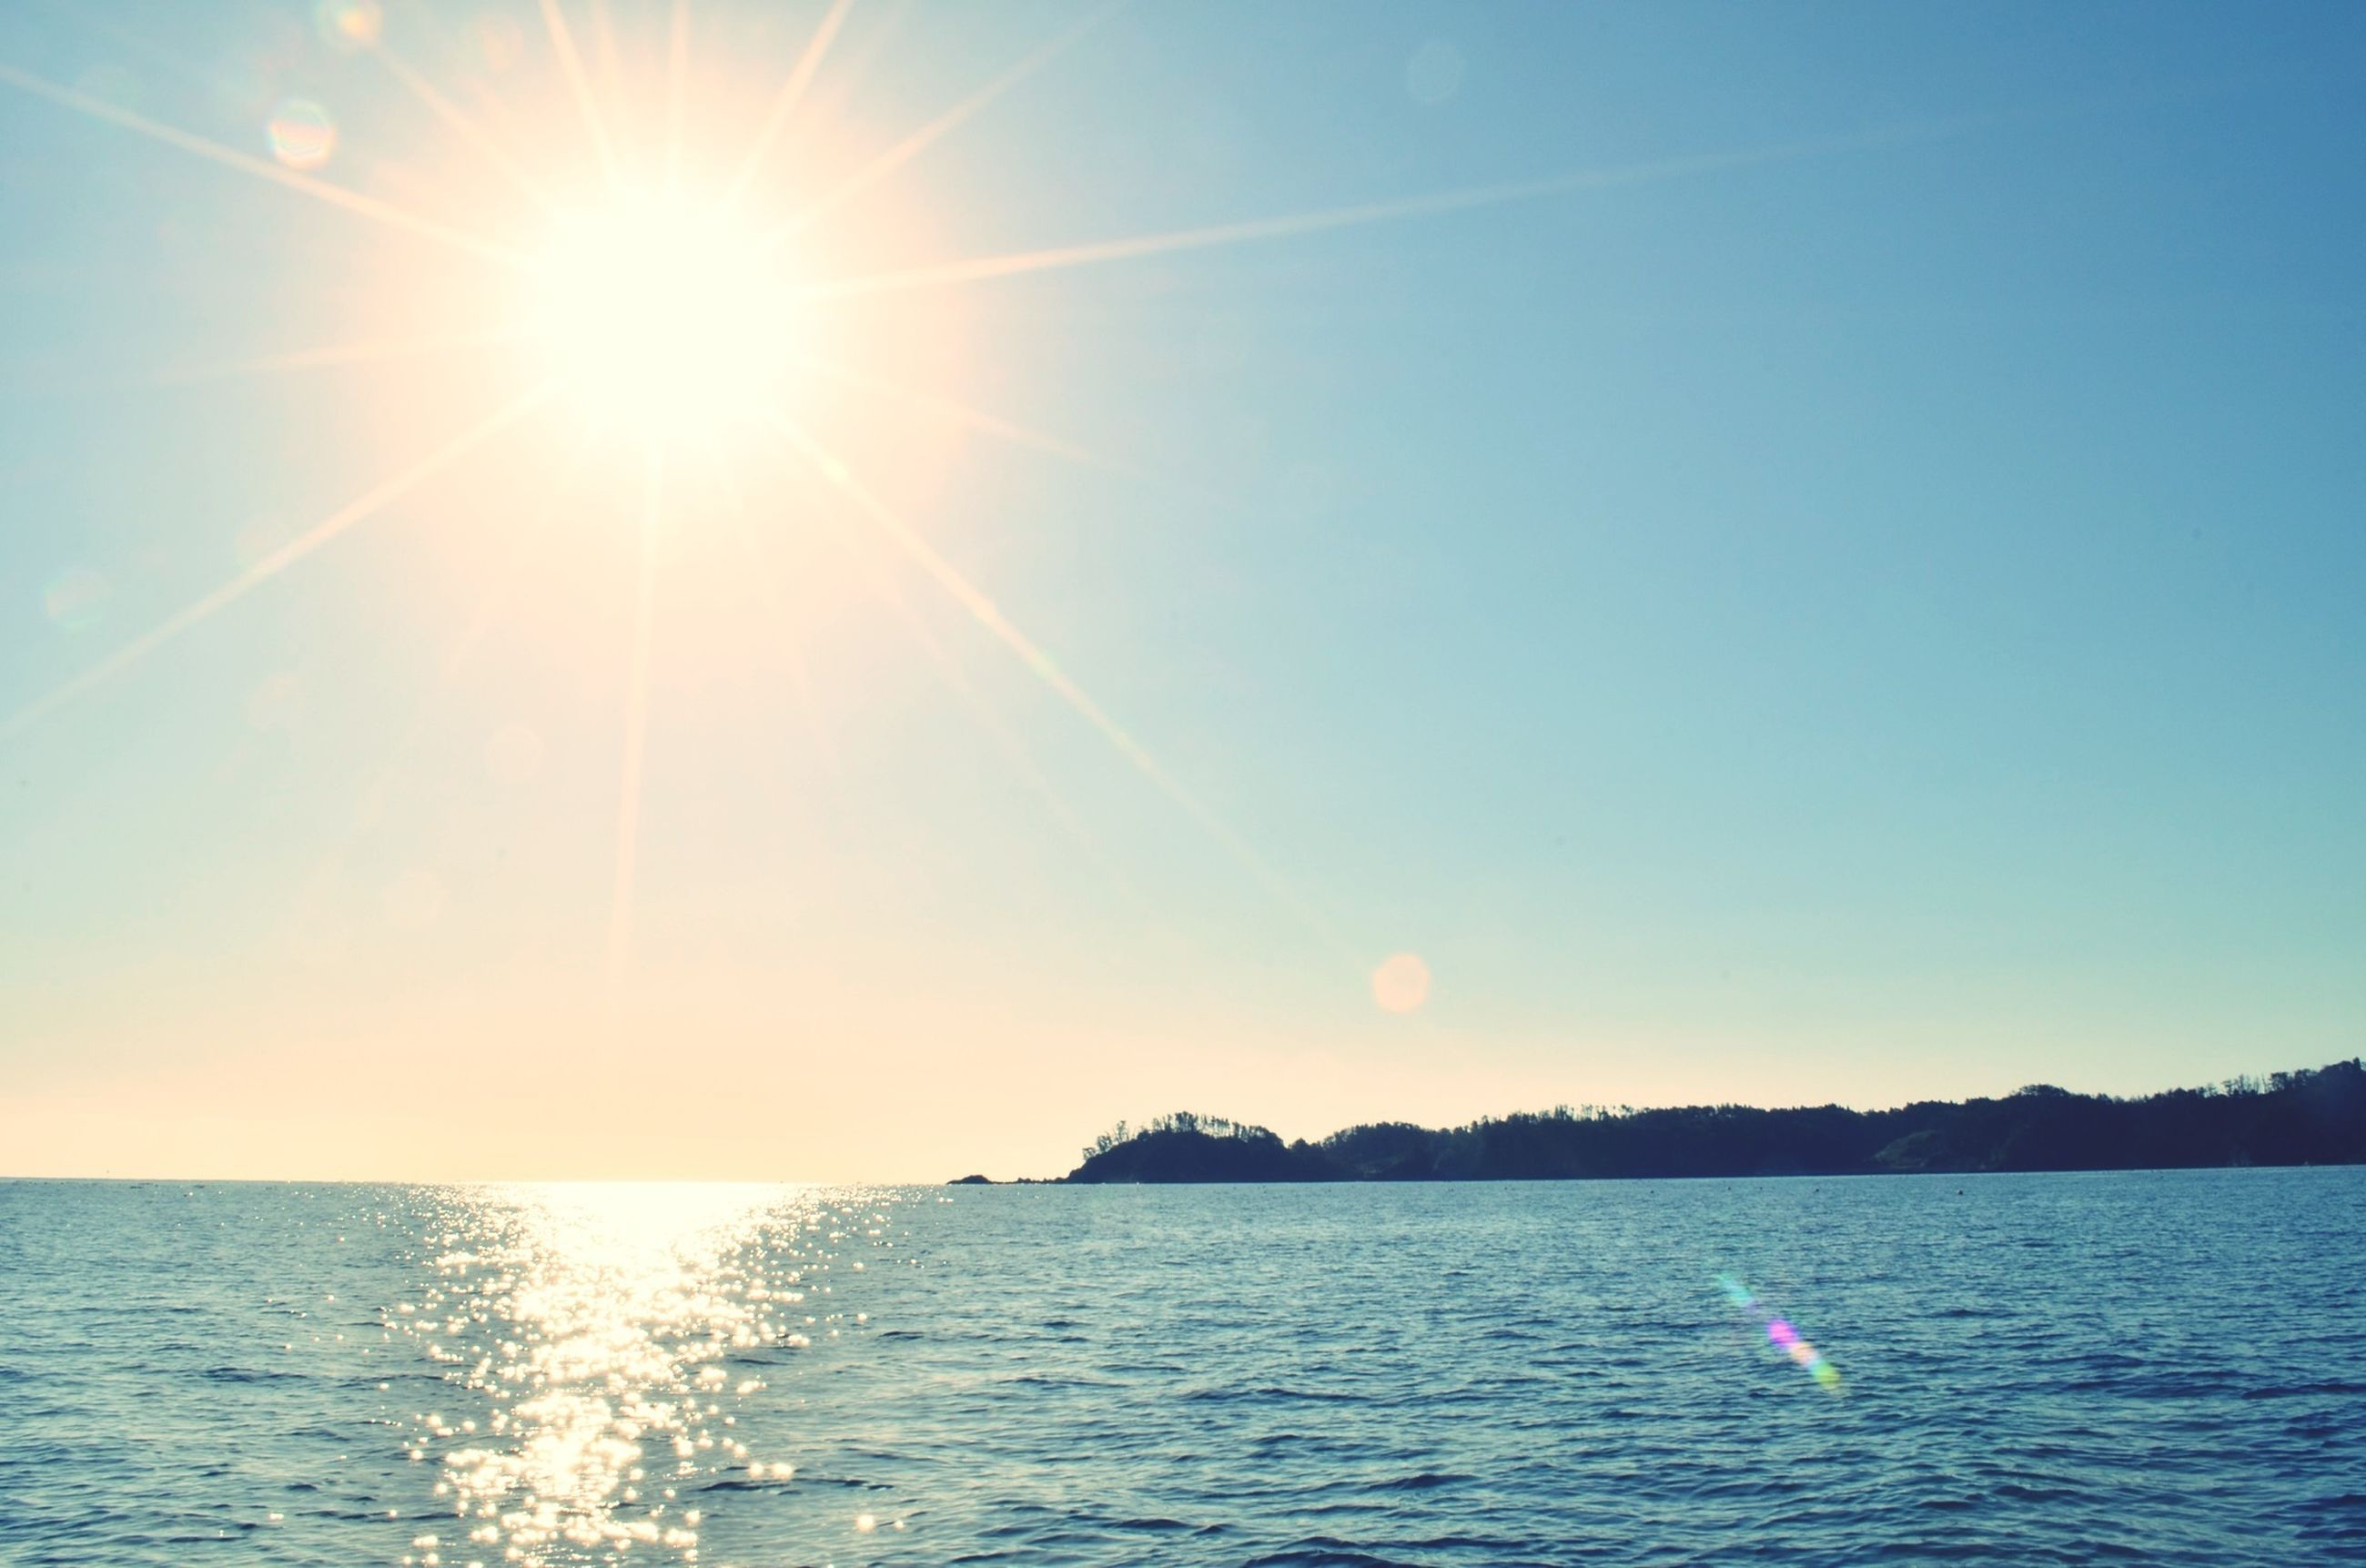 sun, water, sea, waterfront, sunlight, scenics, sunbeam, tranquil scene, horizon over water, tranquility, lens flare, beauty in nature, sky, nature, clear sky, rippled, idyllic, blue, bright, sunny